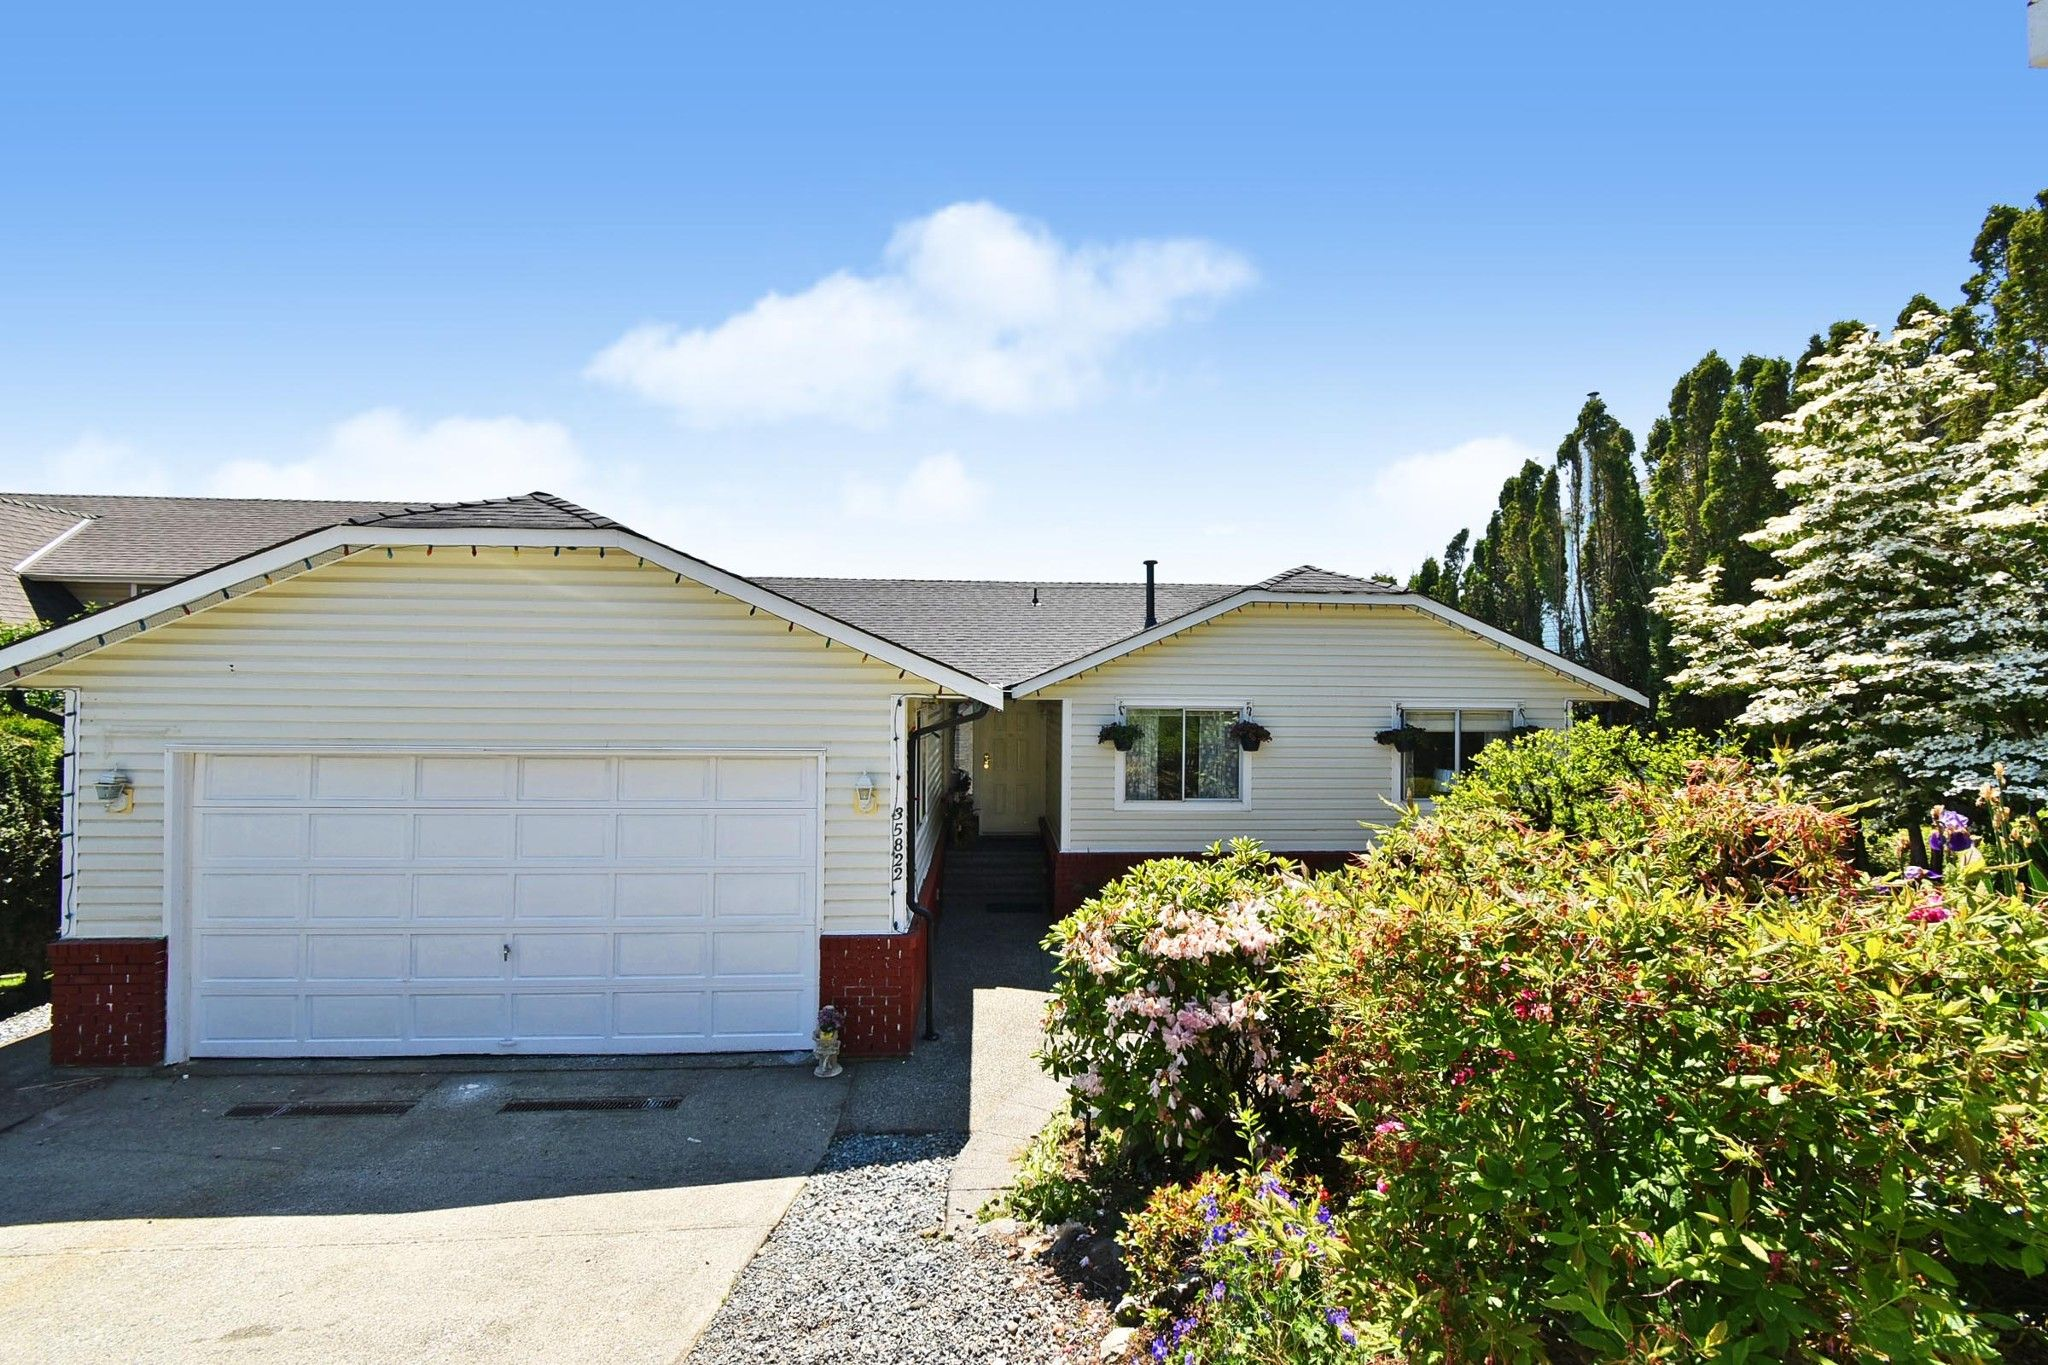 """Main Photo: 35822 CANTERBURY Avenue in Abbotsford: Abbotsford East House for sale in """"Mountain Village"""" : MLS®# R2583174"""